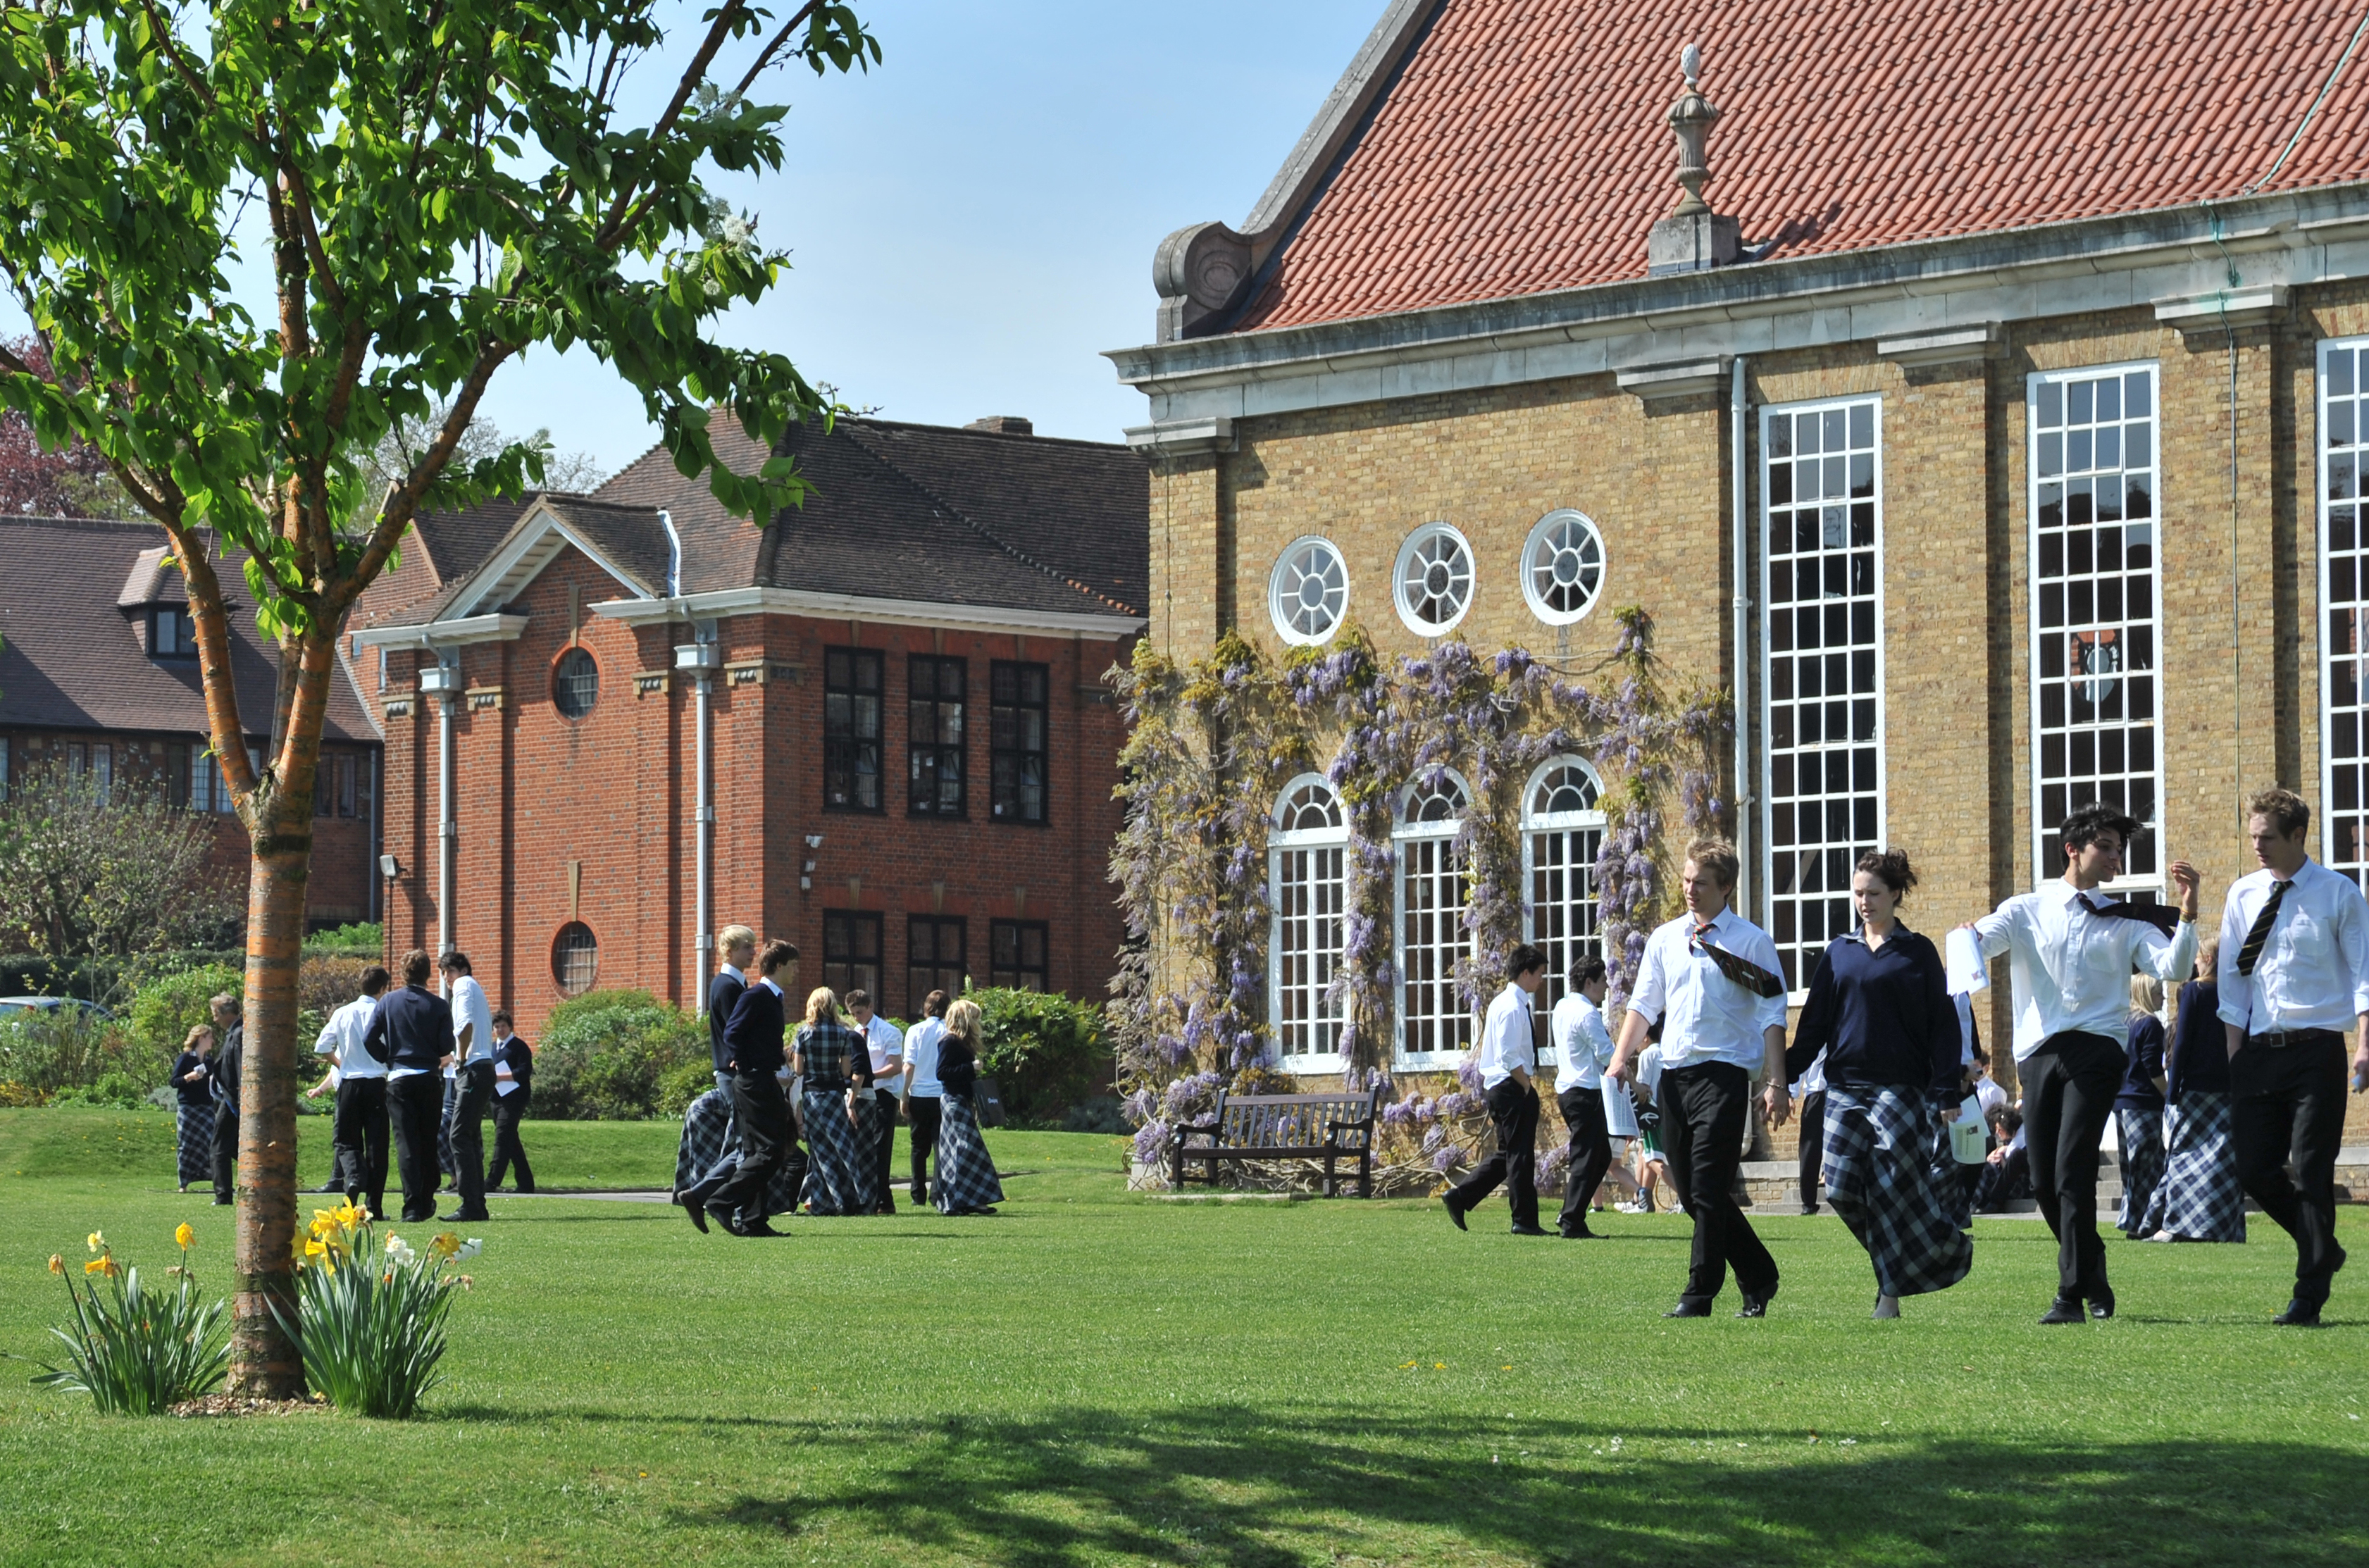 Bishop's Stortford College, independent co-educational school